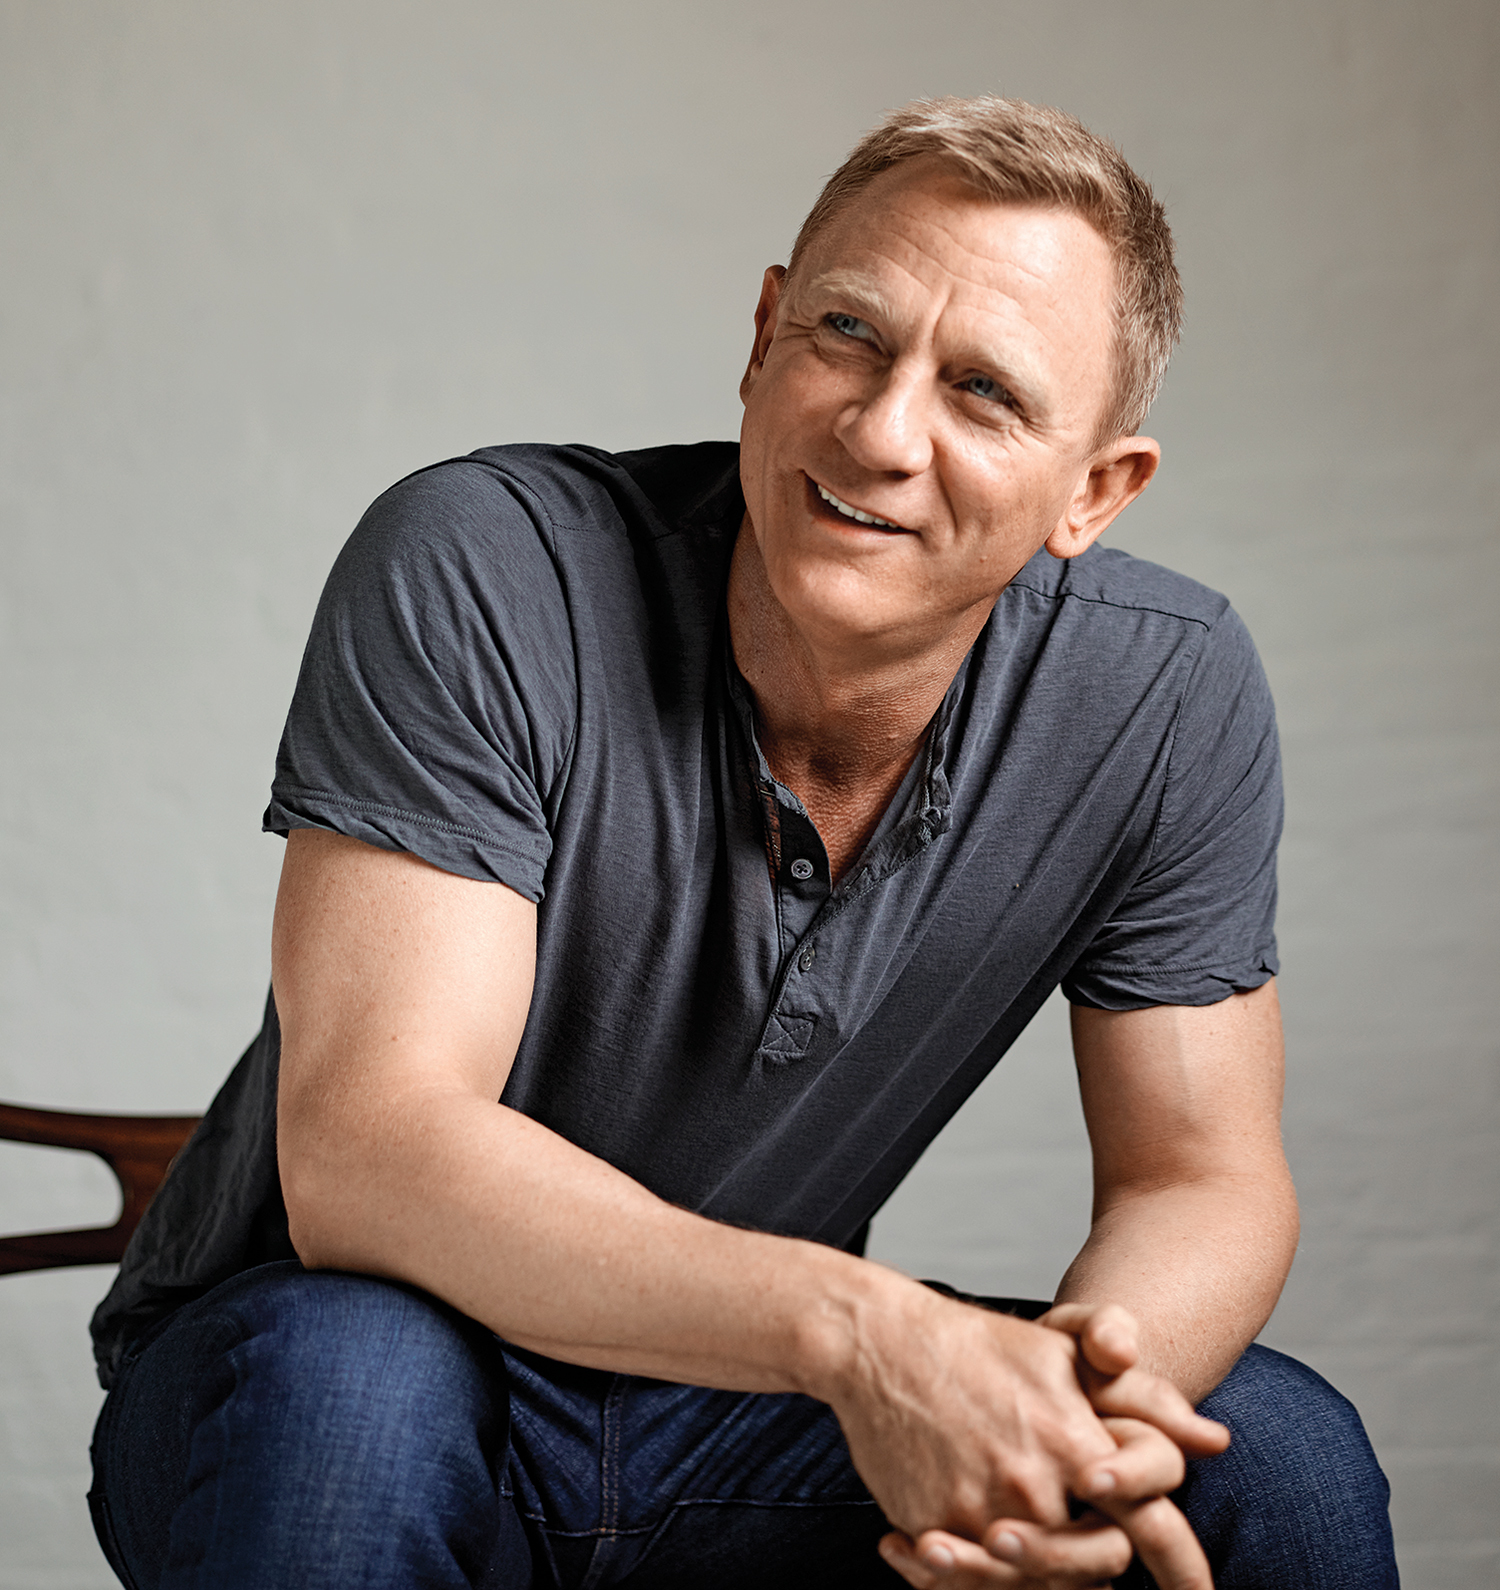 Daniel Craig on the new James Bond film and being a New Yorker Daniel Craig